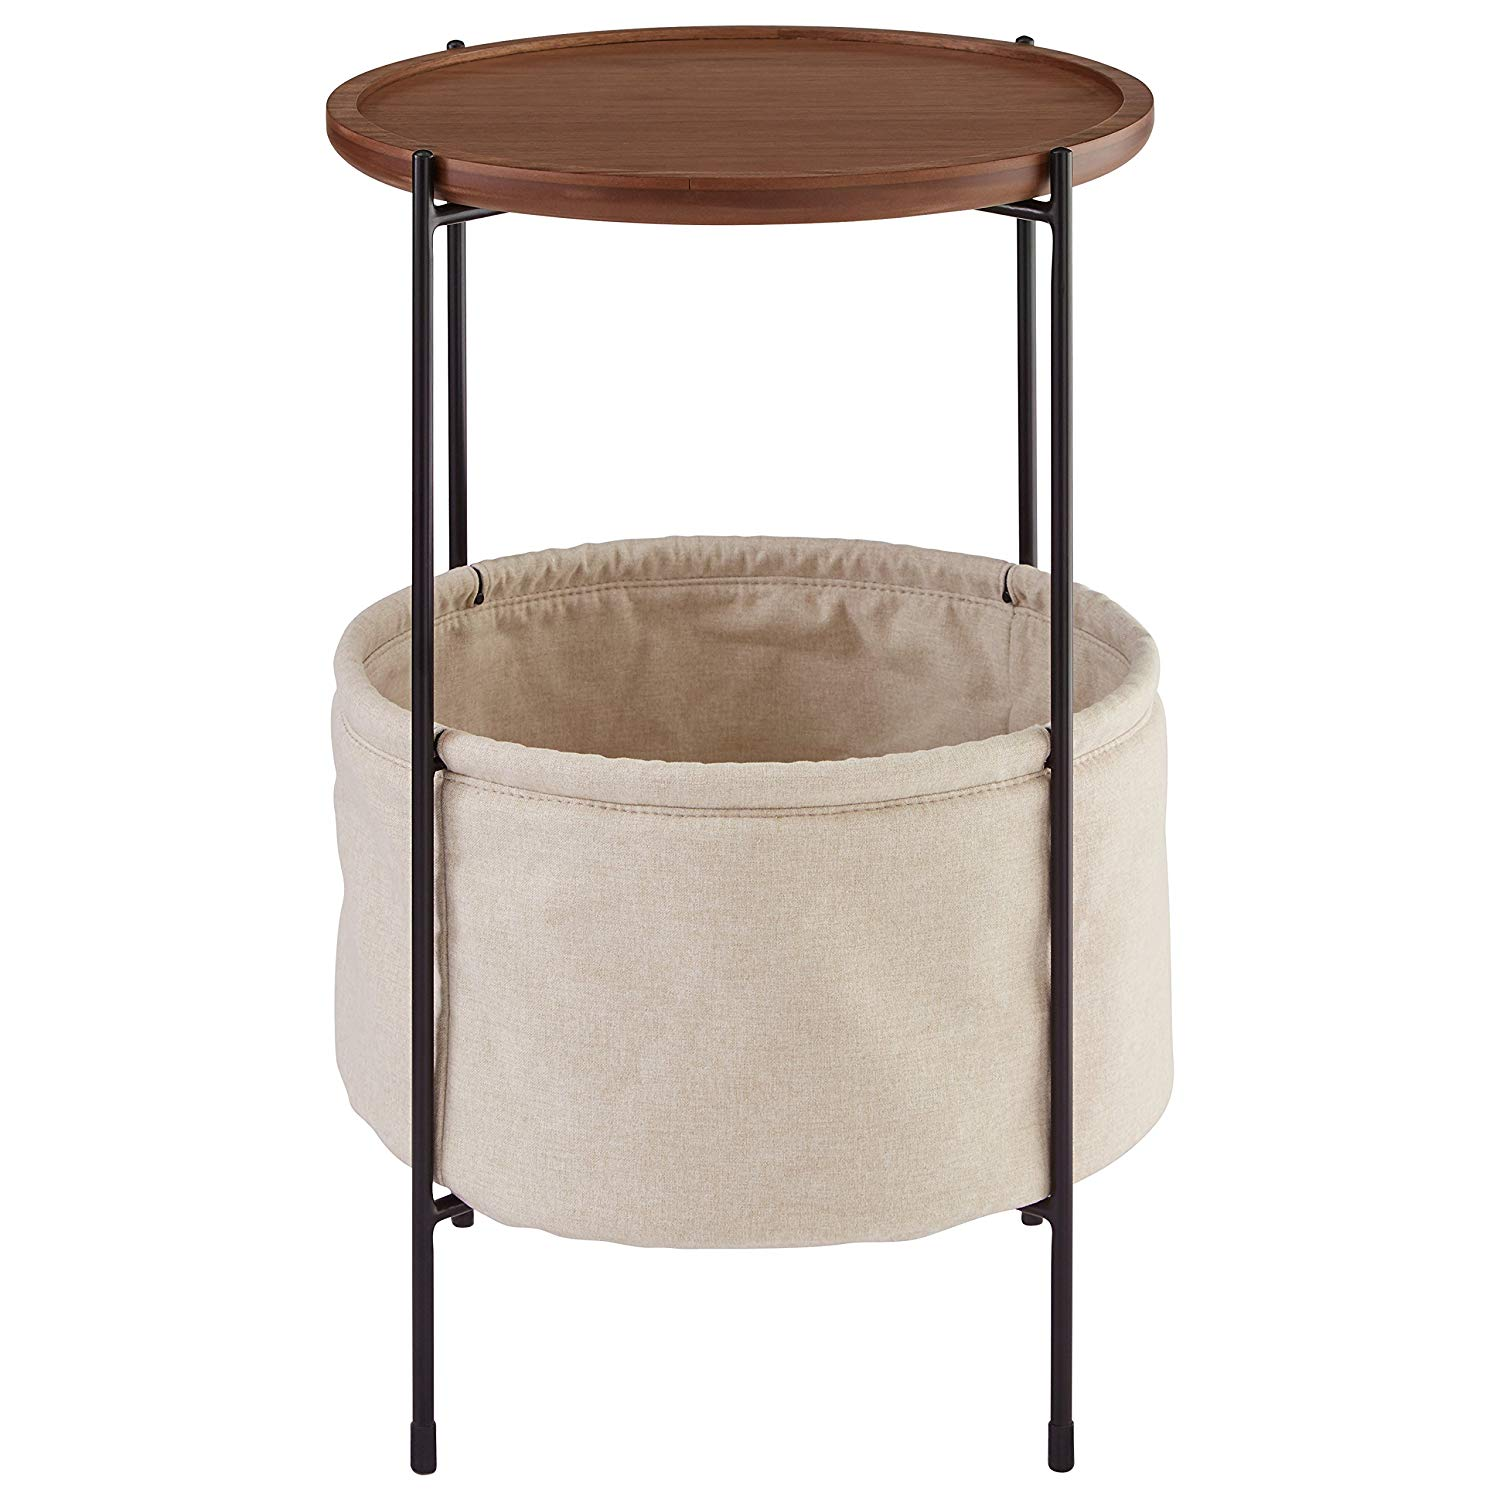 rivet meeks round storage basket side table walnut and small accent tables under cream fabric kitchen dining room legs wood pedestal coffee end ideas outdoor sconce lights